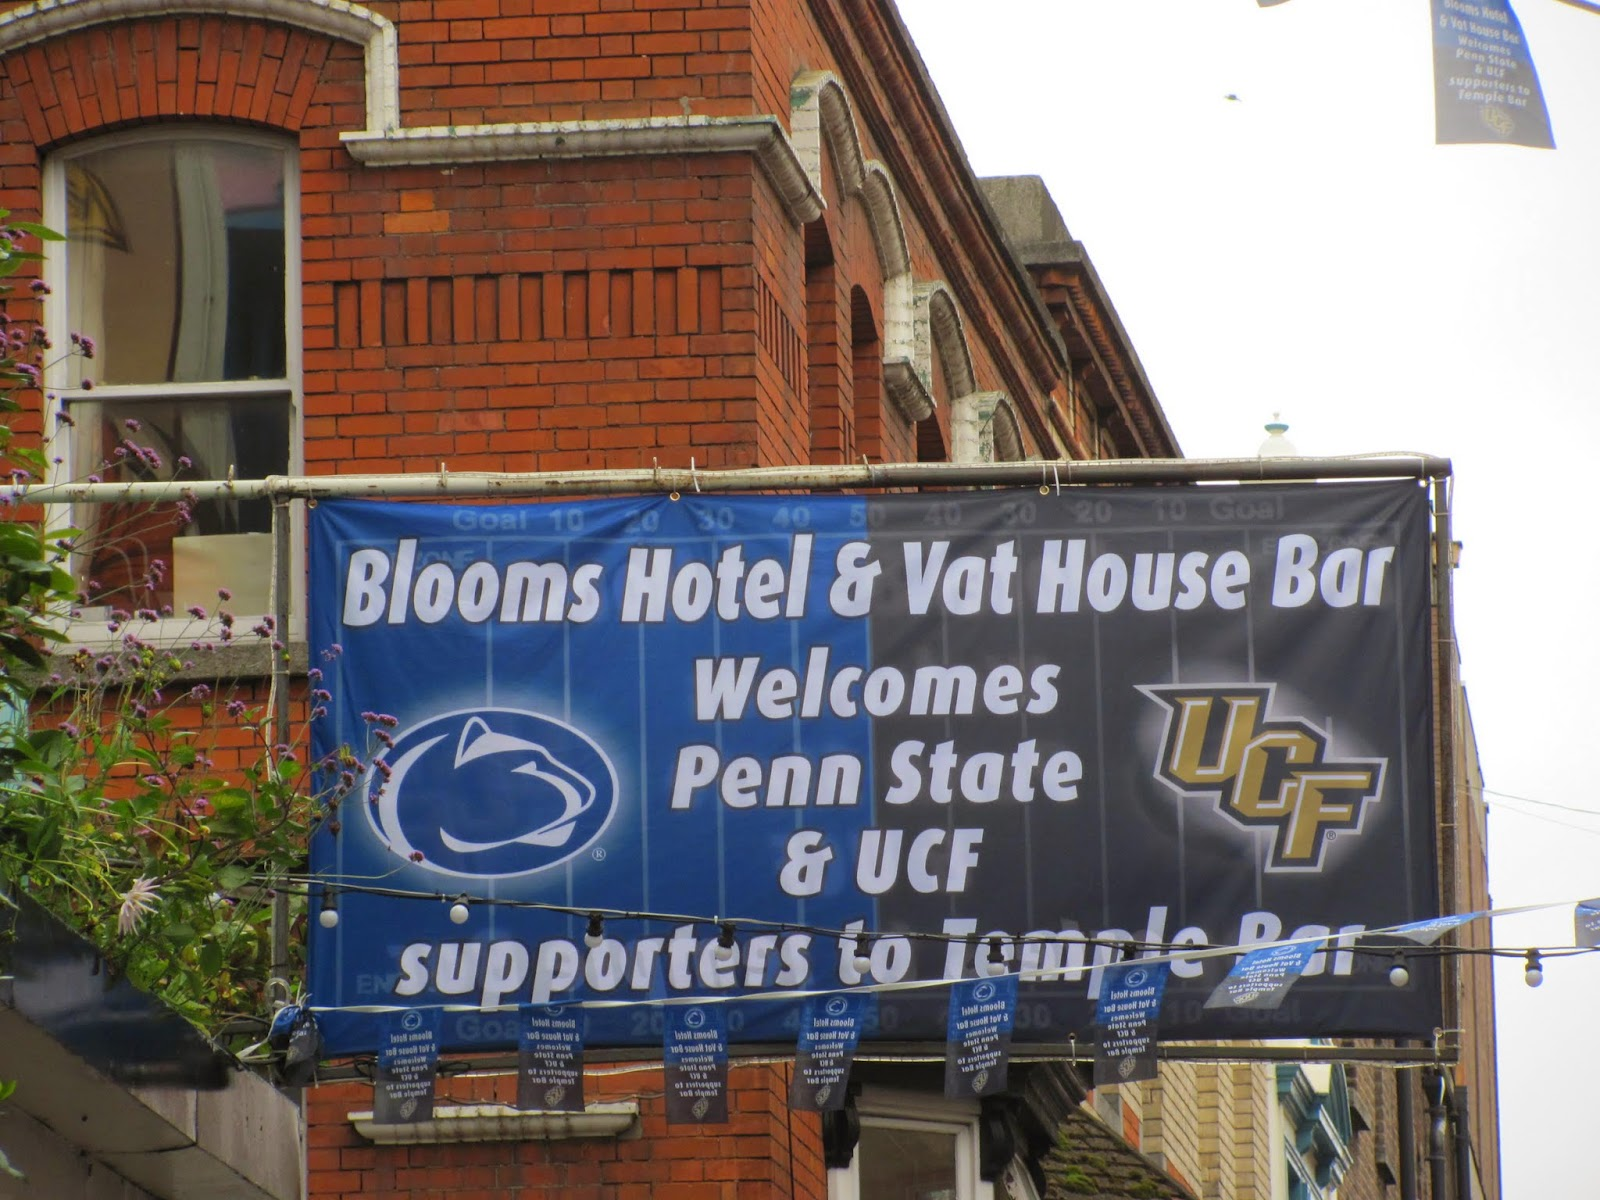 The VAT House Sign for Penn State and UCF Croke Park Classic 2014